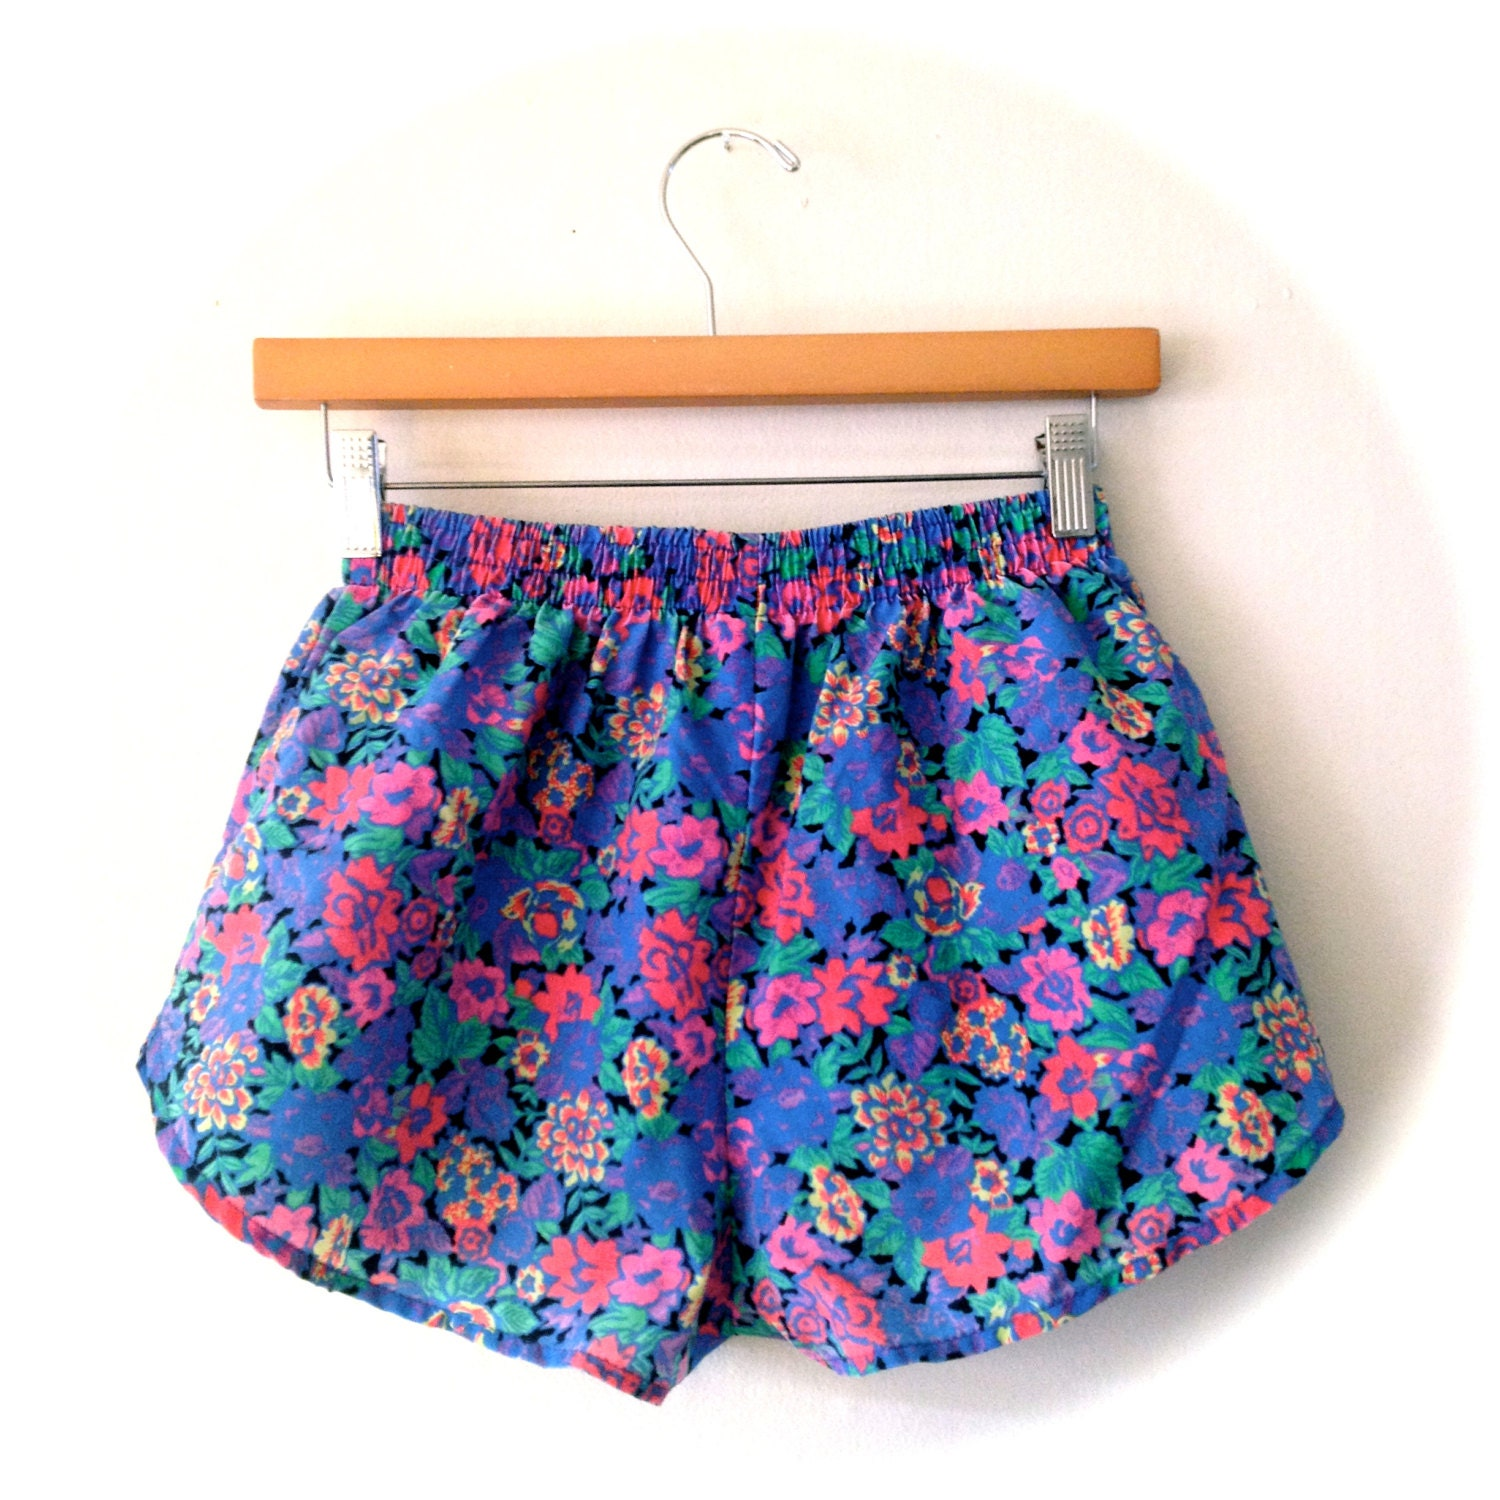 Walking Shorts The body of microfiber-polyester is the perfect performance fabric that also comes in colorful prints! These shorts are great for a marathon or your every day workout, with an incredibly comfortable fit and feel while running.